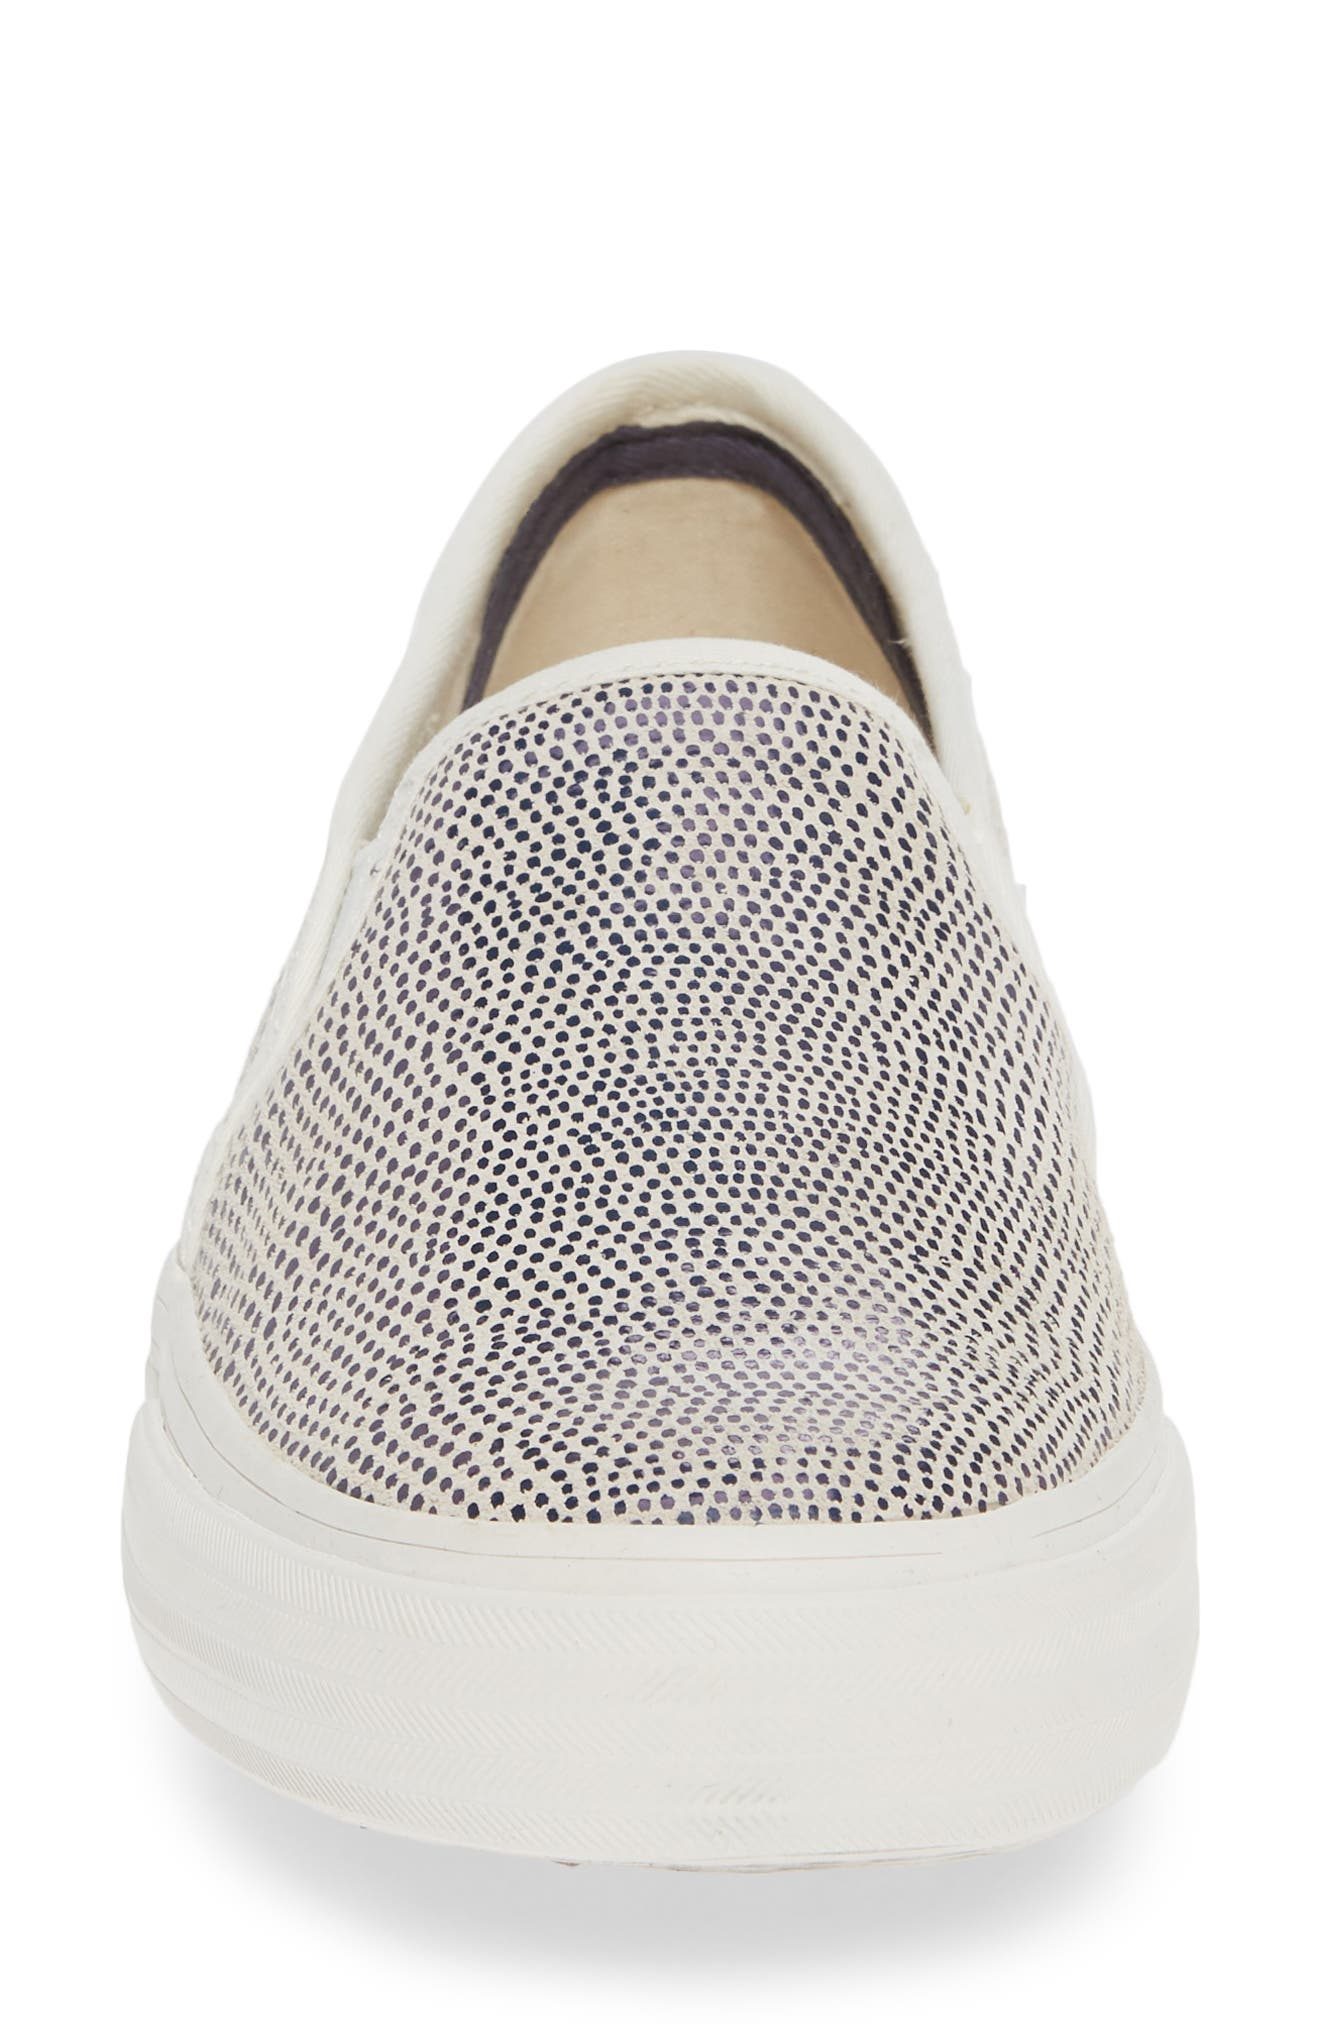 KEDS<SUP>®</SUP>, Double Decker Slip-On Sneaker, Alternate thumbnail 4, color, BLUE